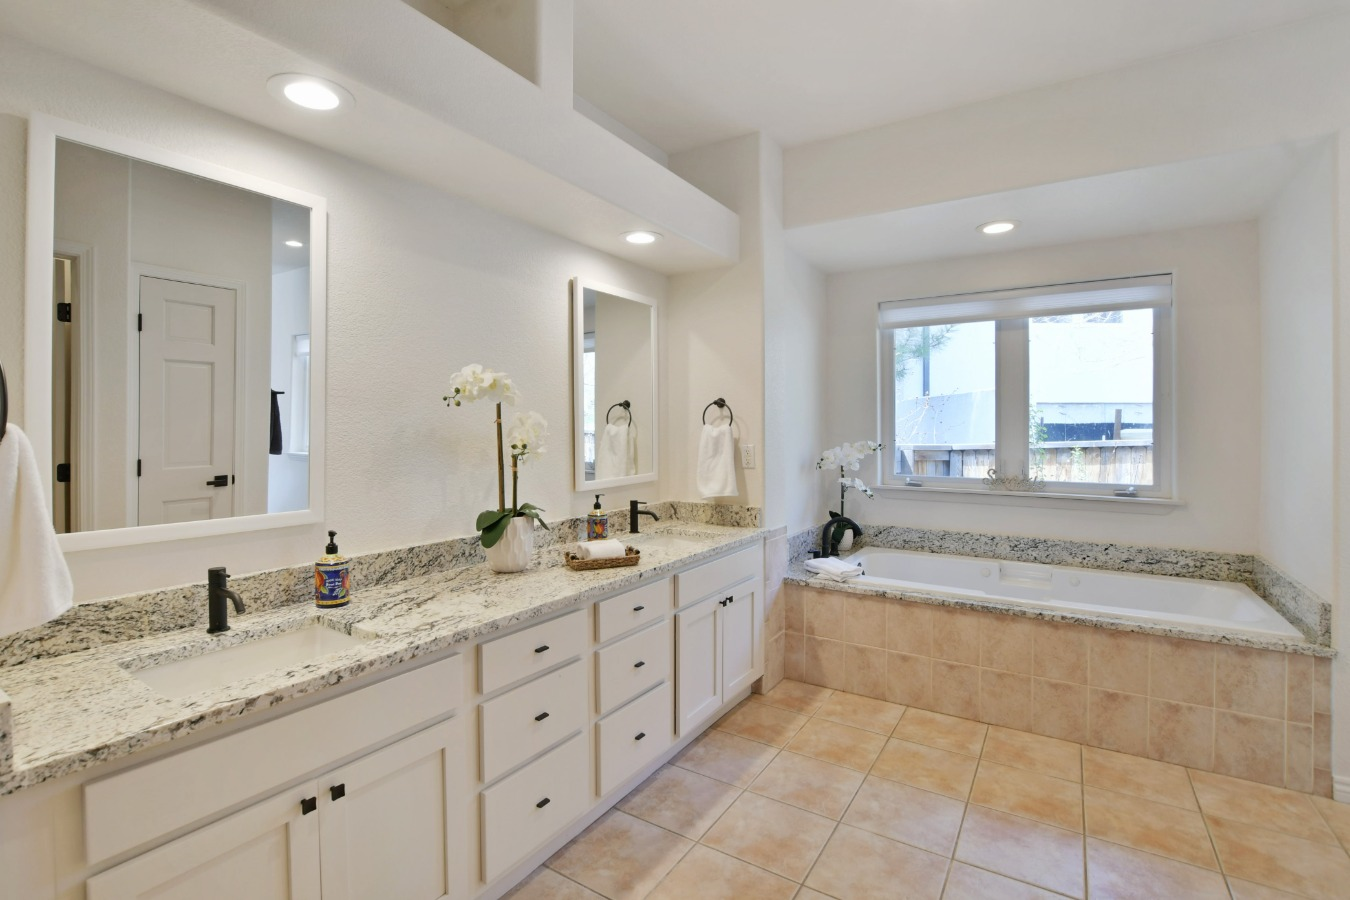 Jetted Soaker Tub in Master Bath